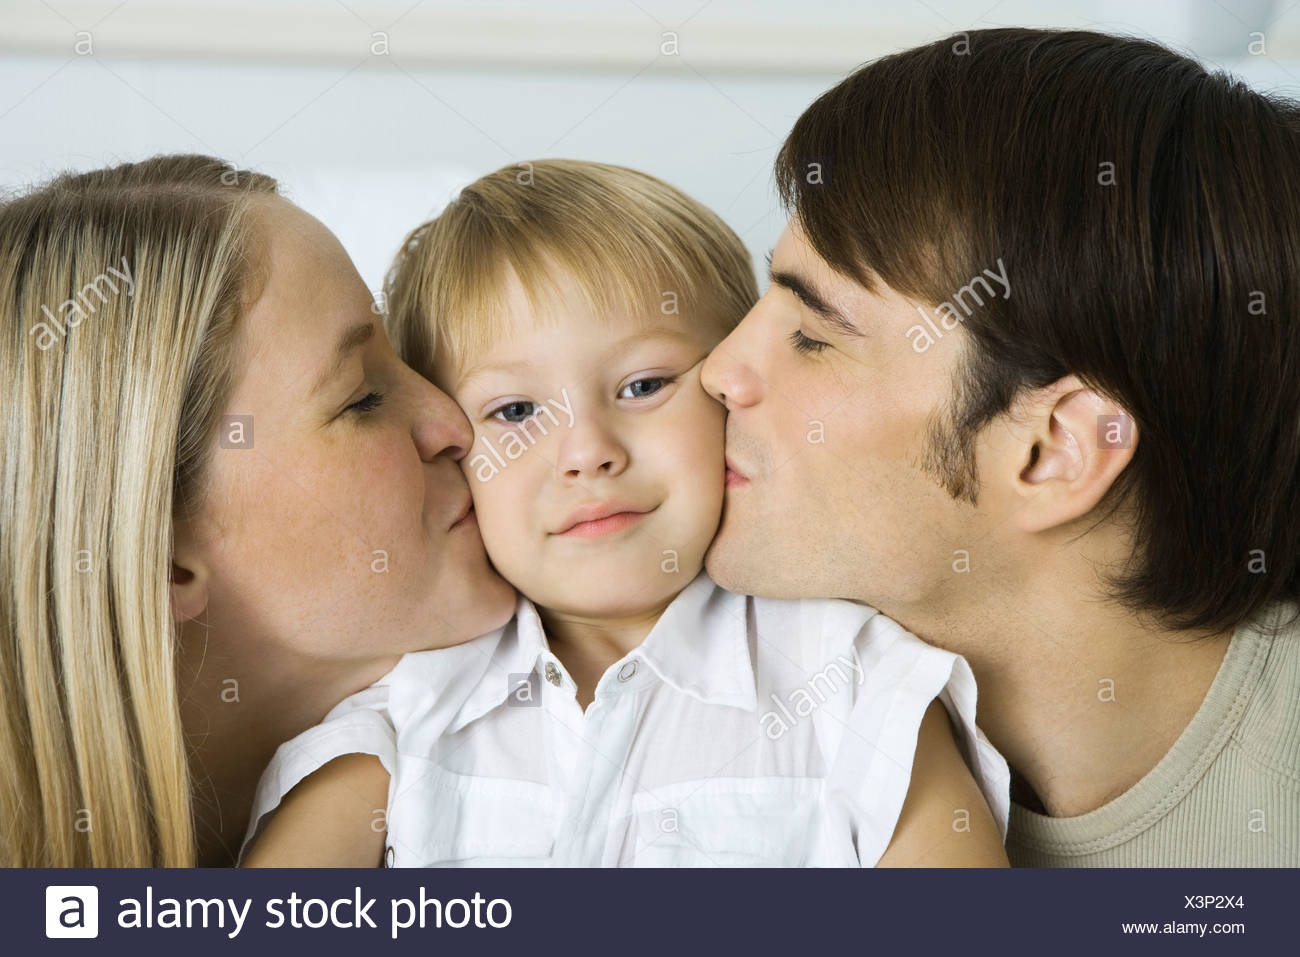 Parents kissing little boy's cheeks, boy looking at camera - Stock Image